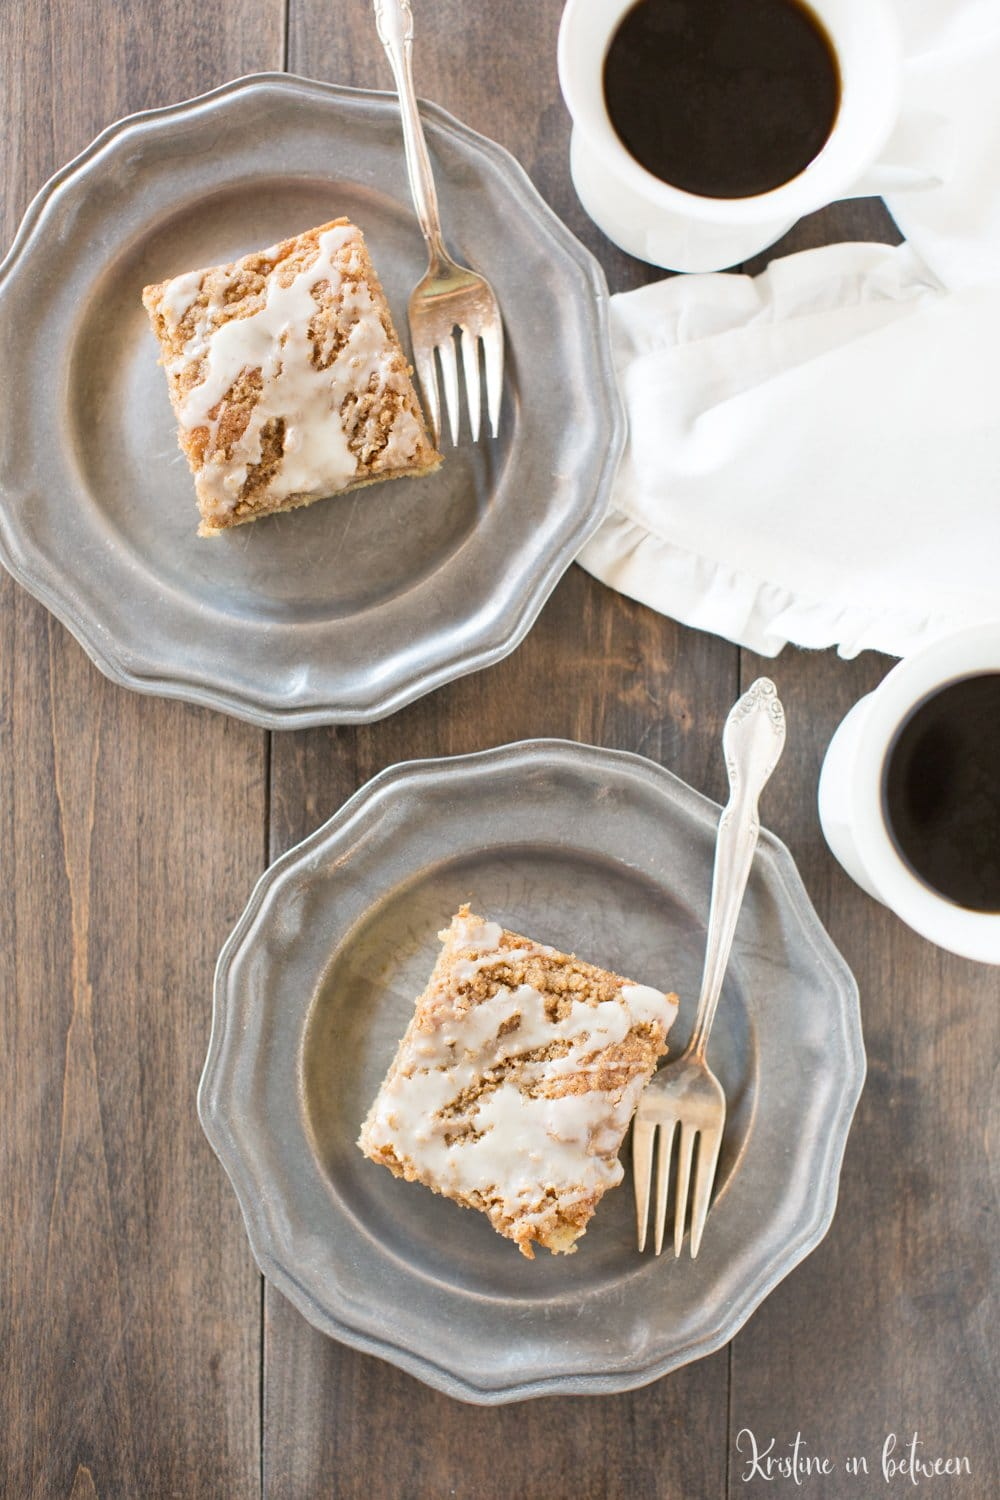 This small-batch banana crumb cake is the perfect addition to any brunch.